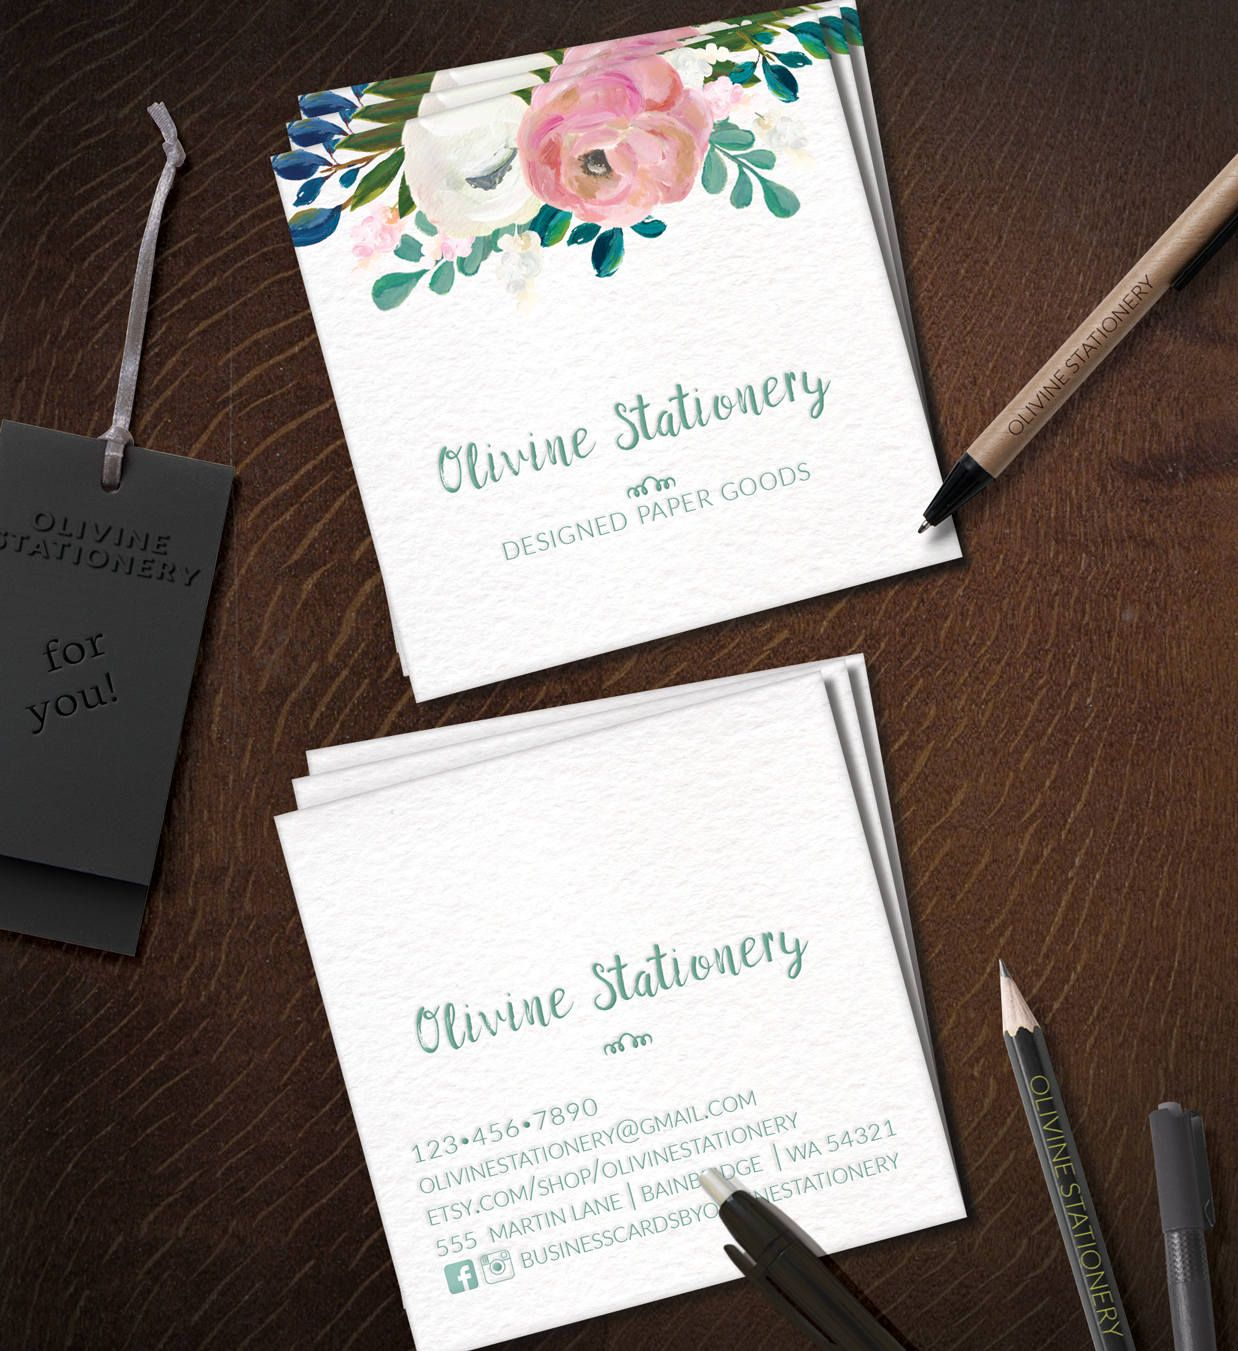 Pin by Olivinestationery on Business Cards | Pinterest | Business ...